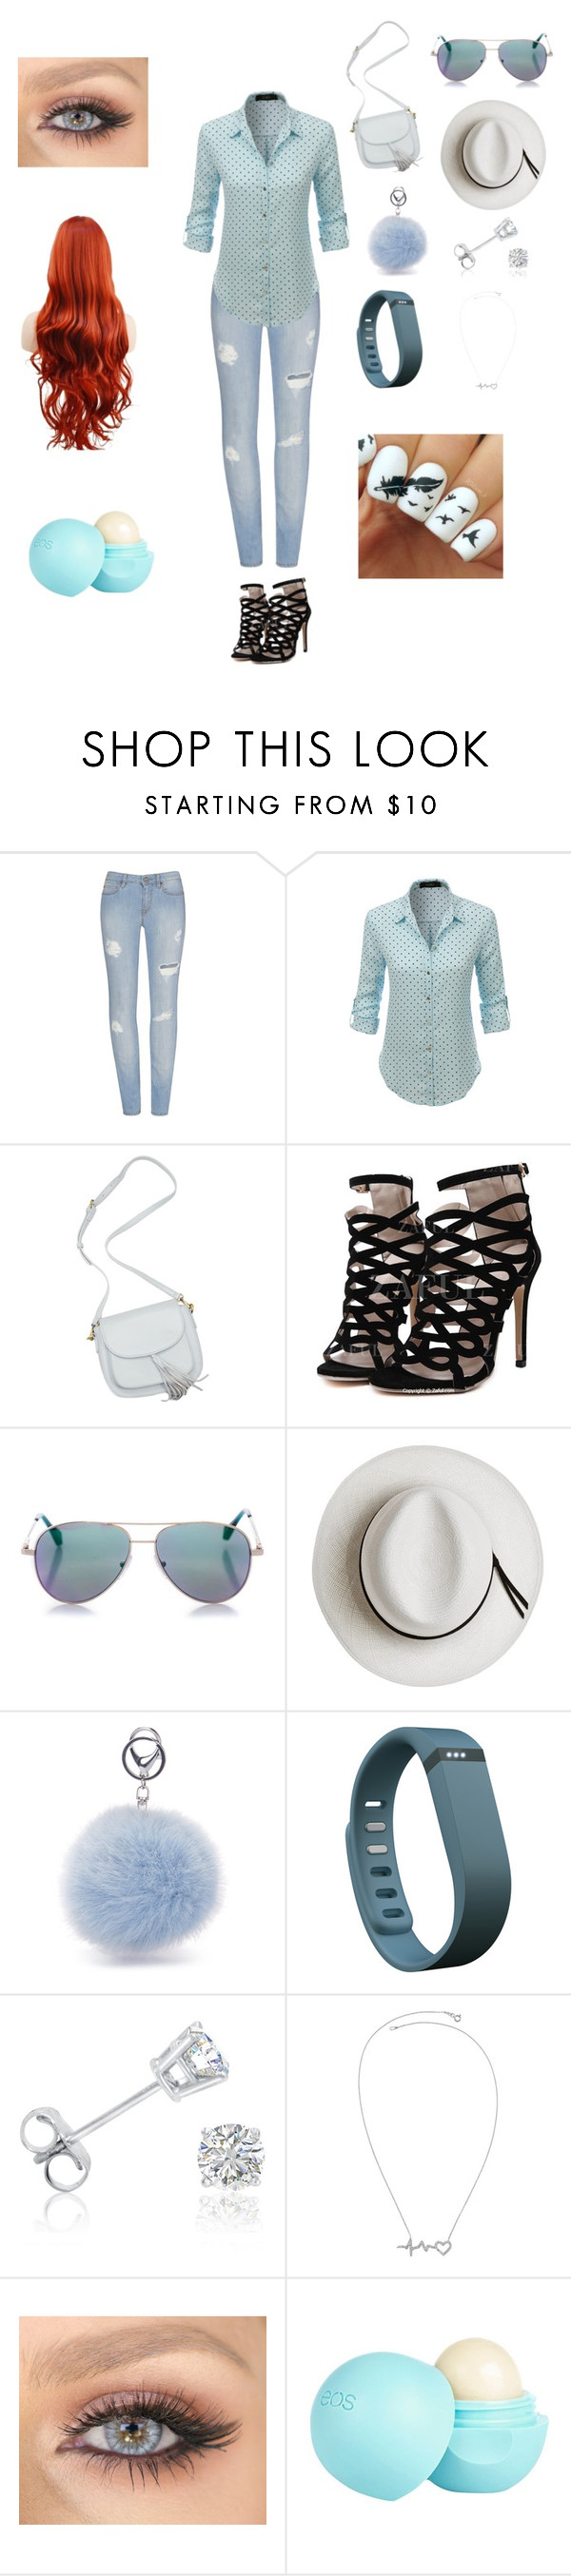 """""""Chillin"""" by jazzywiggles ❤ liked on Polyvore featuring LE3NO, Cutler and Gross, Calypso Private Label, Fitbit, Amanda Rose Collection and River Island"""